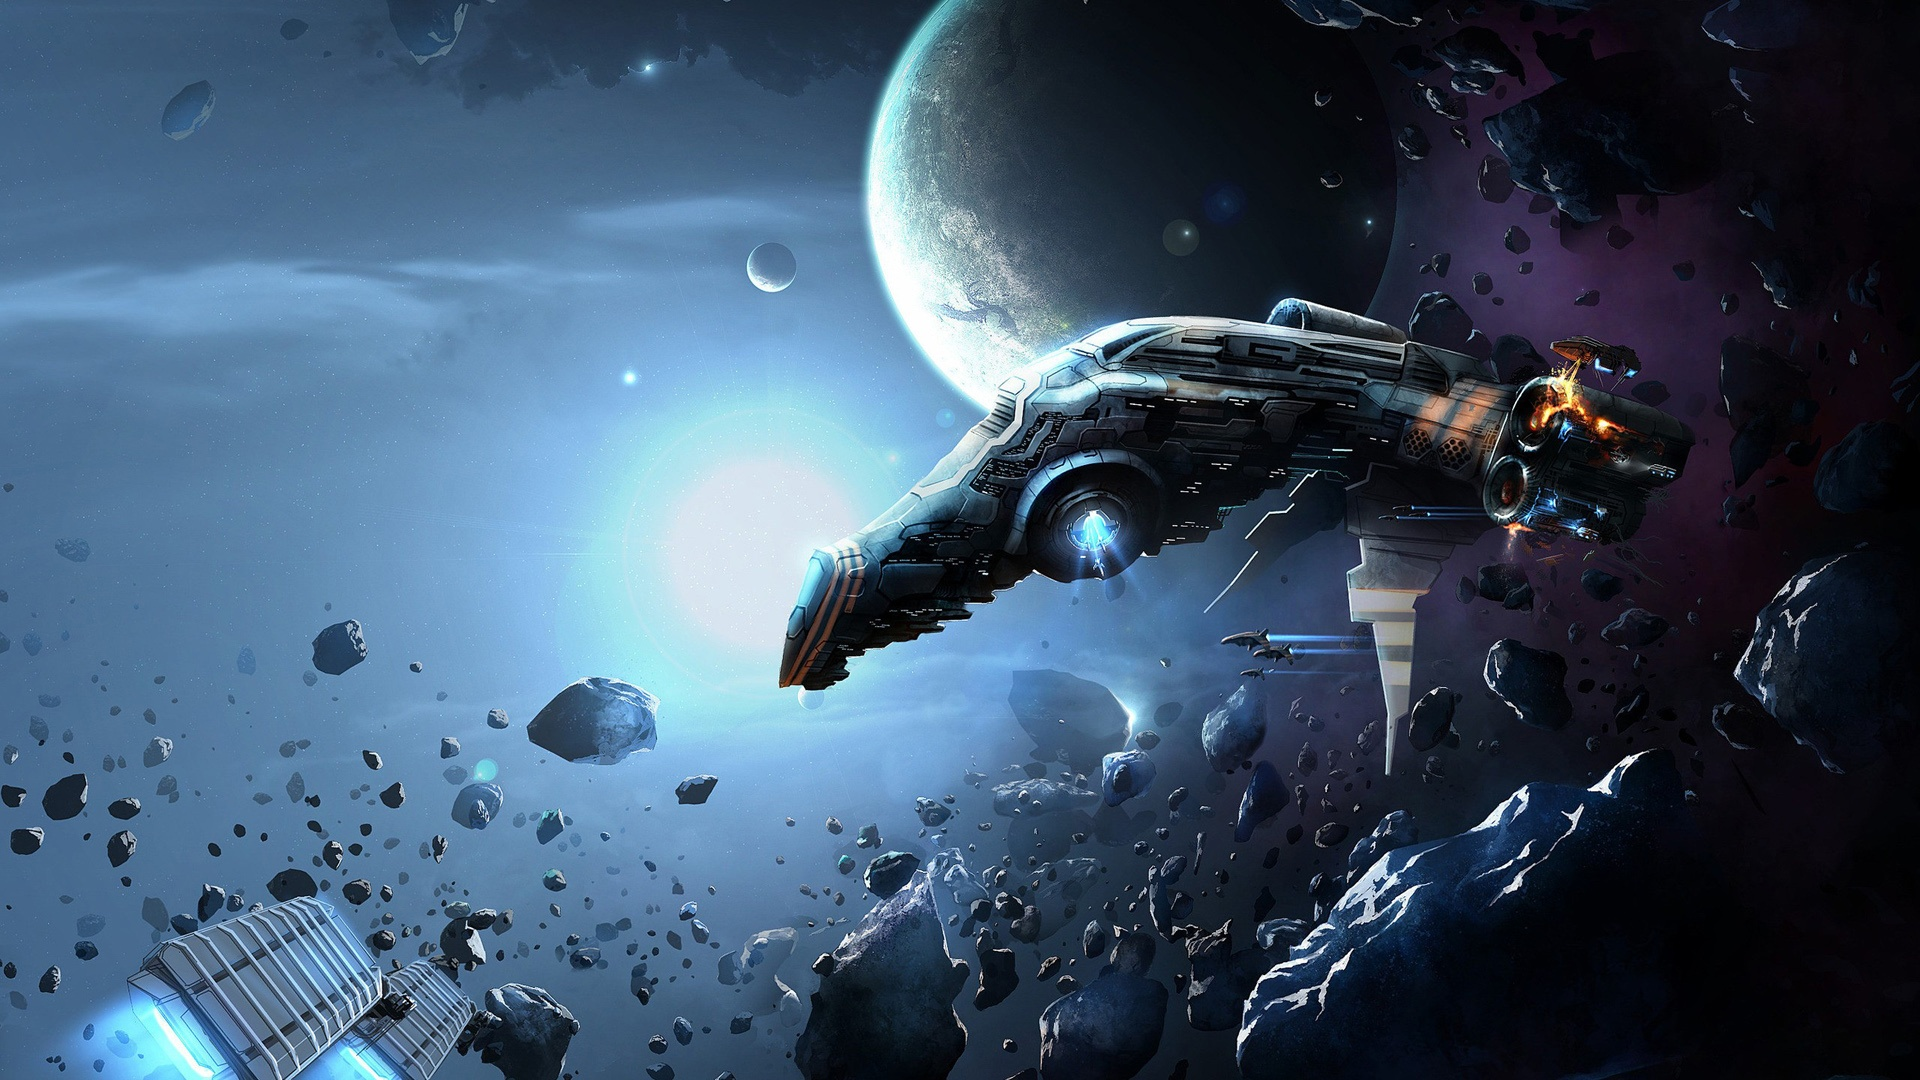 Eve Online Backgrounds Collection for Mobile WPBG